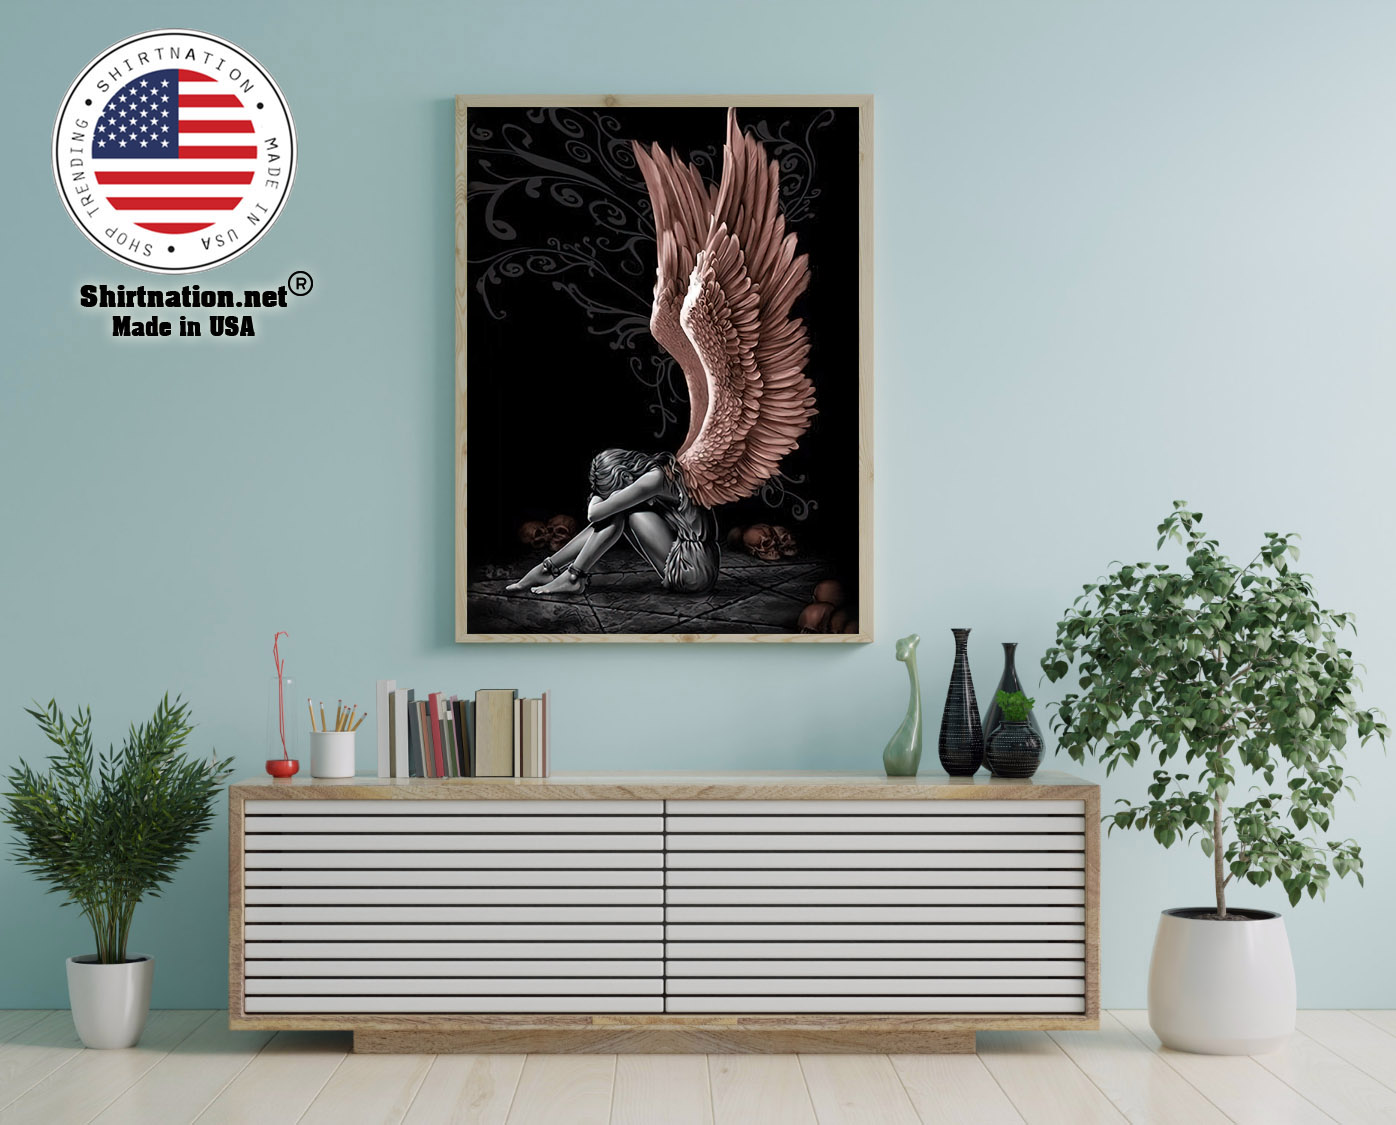 Sitting angle poster and canvas 12